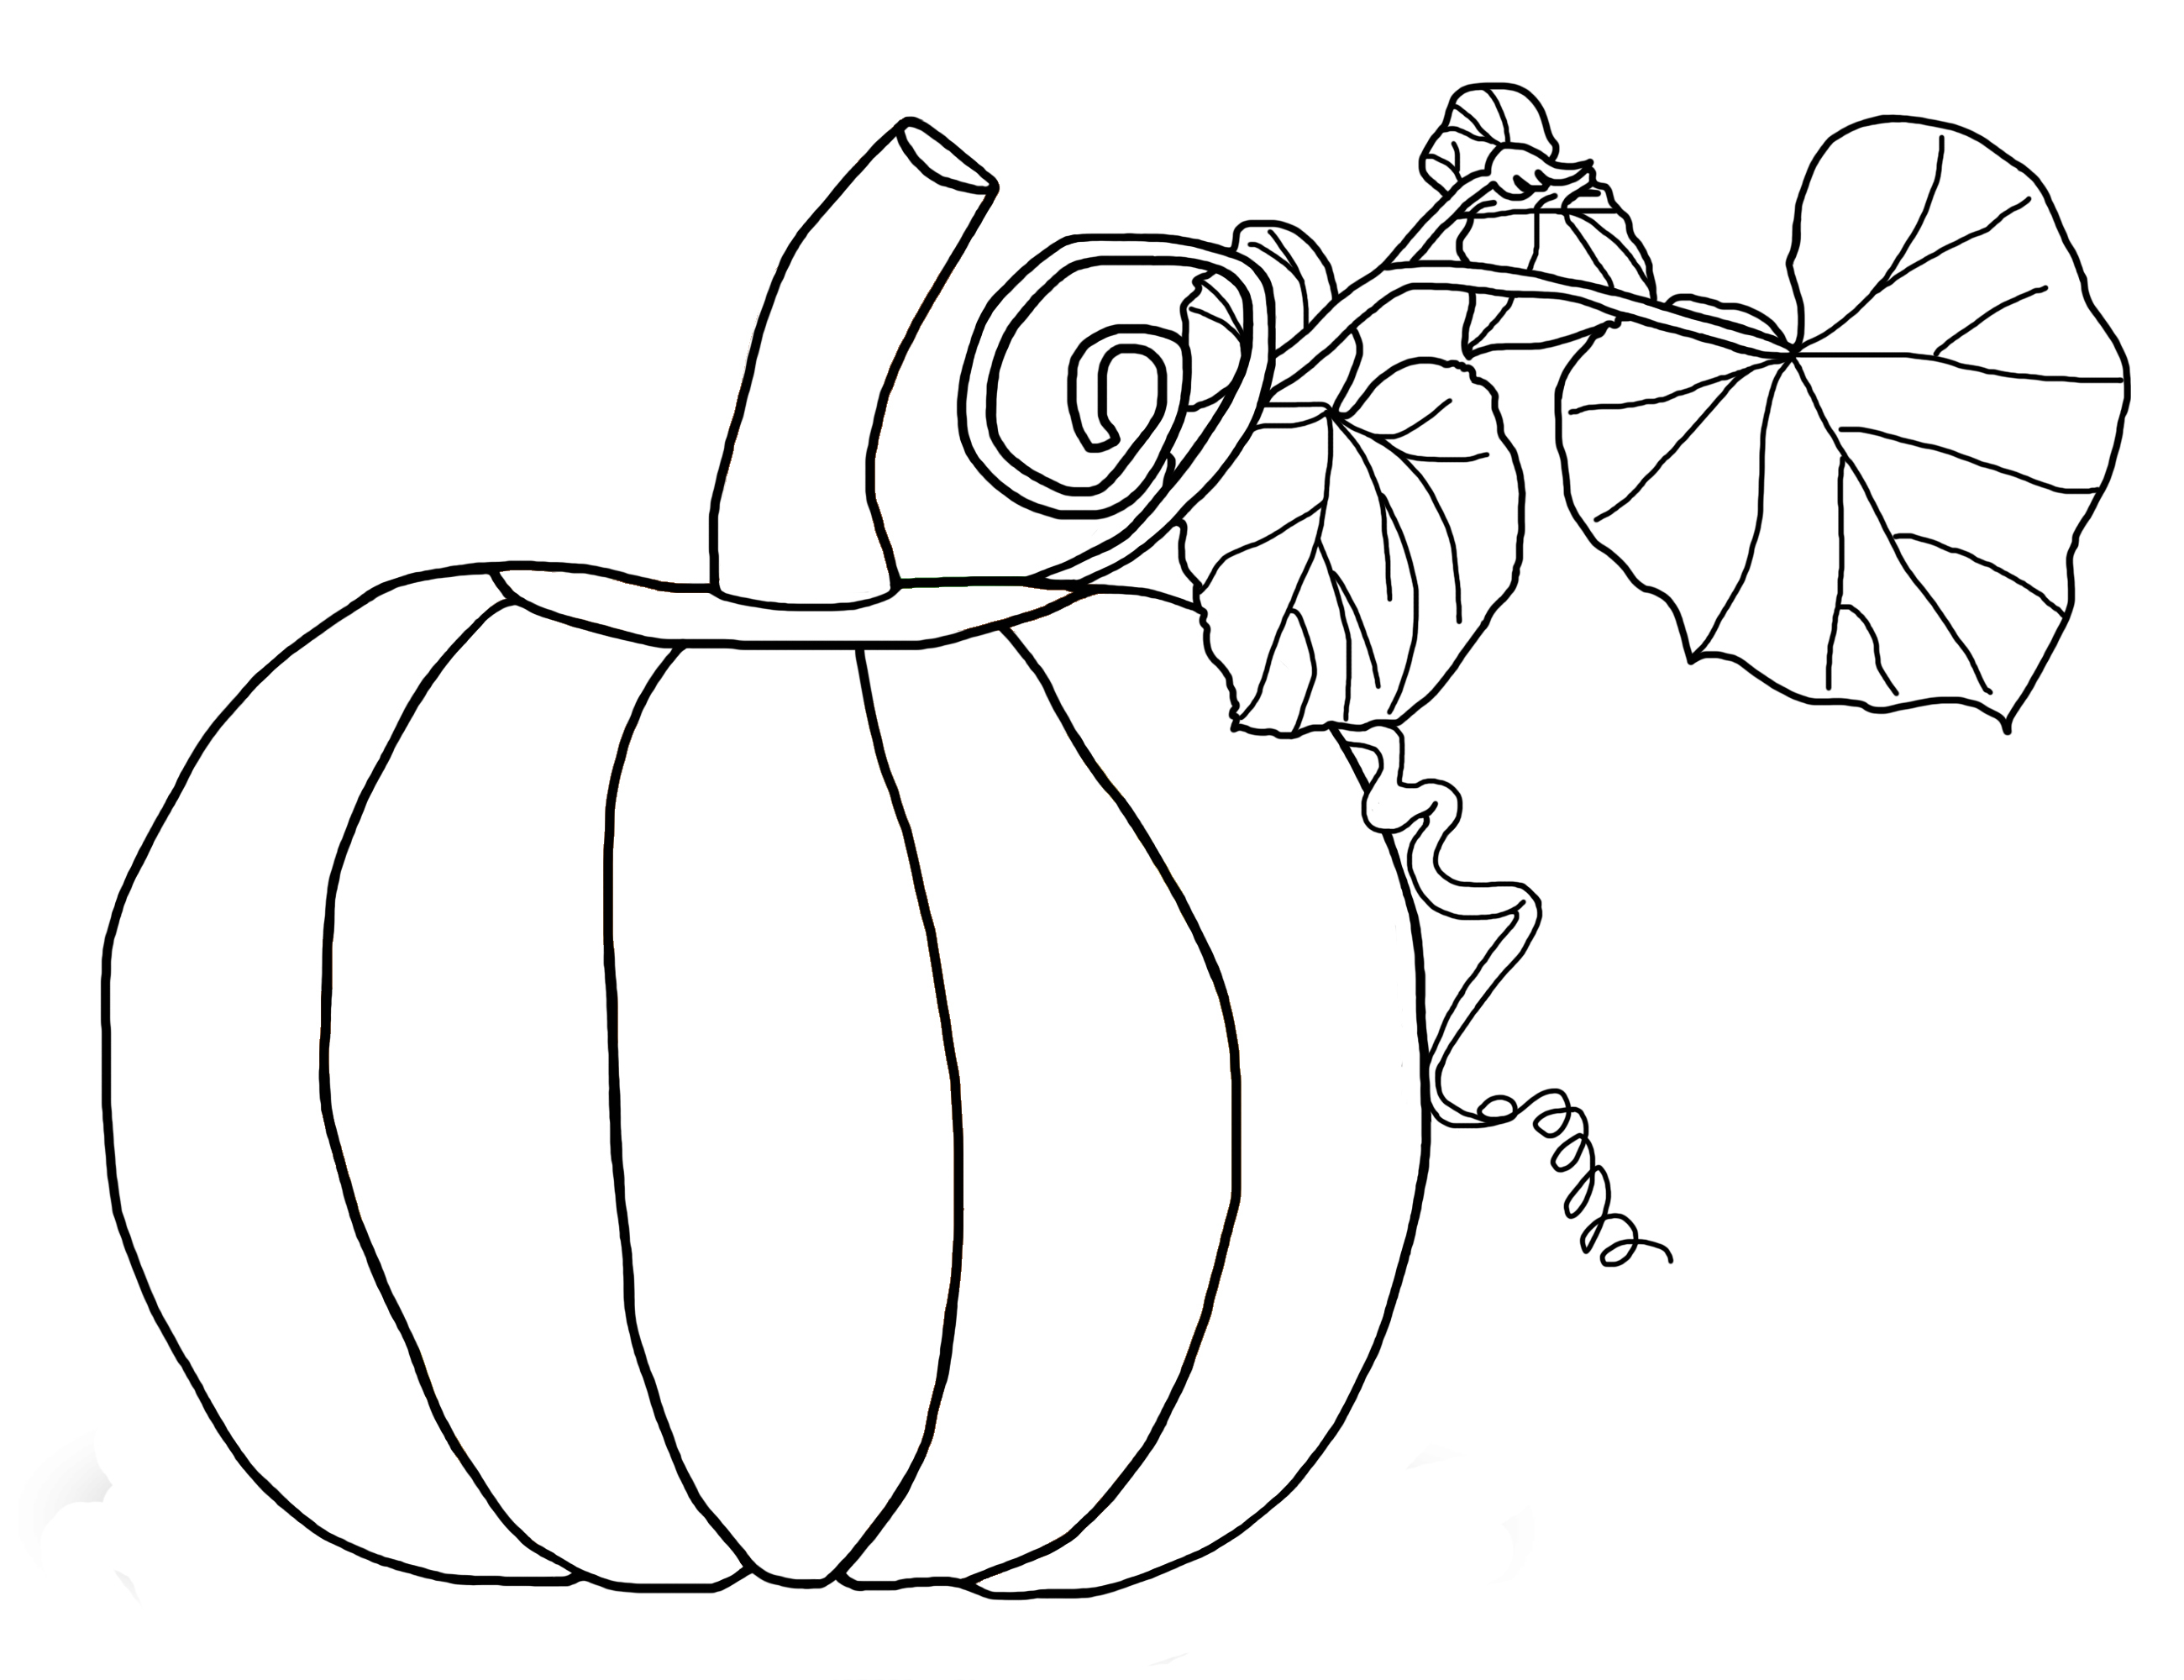 creative pumpkin coloring pages that are sure to make your kids smile